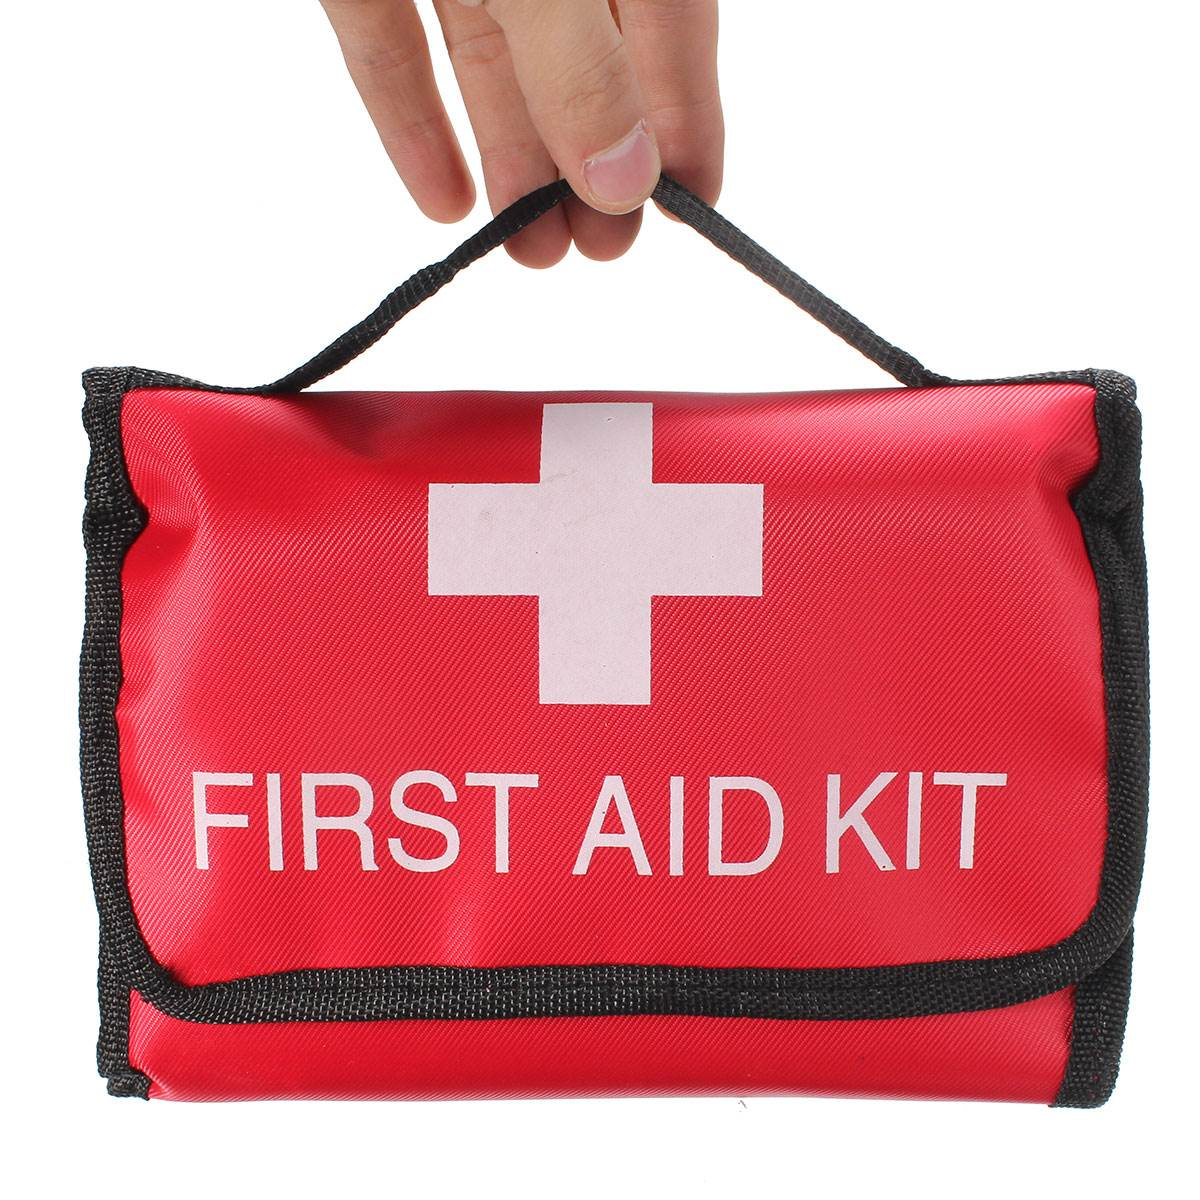 1set Outdoor Wilderness Survival First Aid Kit Medical Bag Rescuing Equipment Camping Hiking Medical Emergency Treatment Packs(China (Mainland))